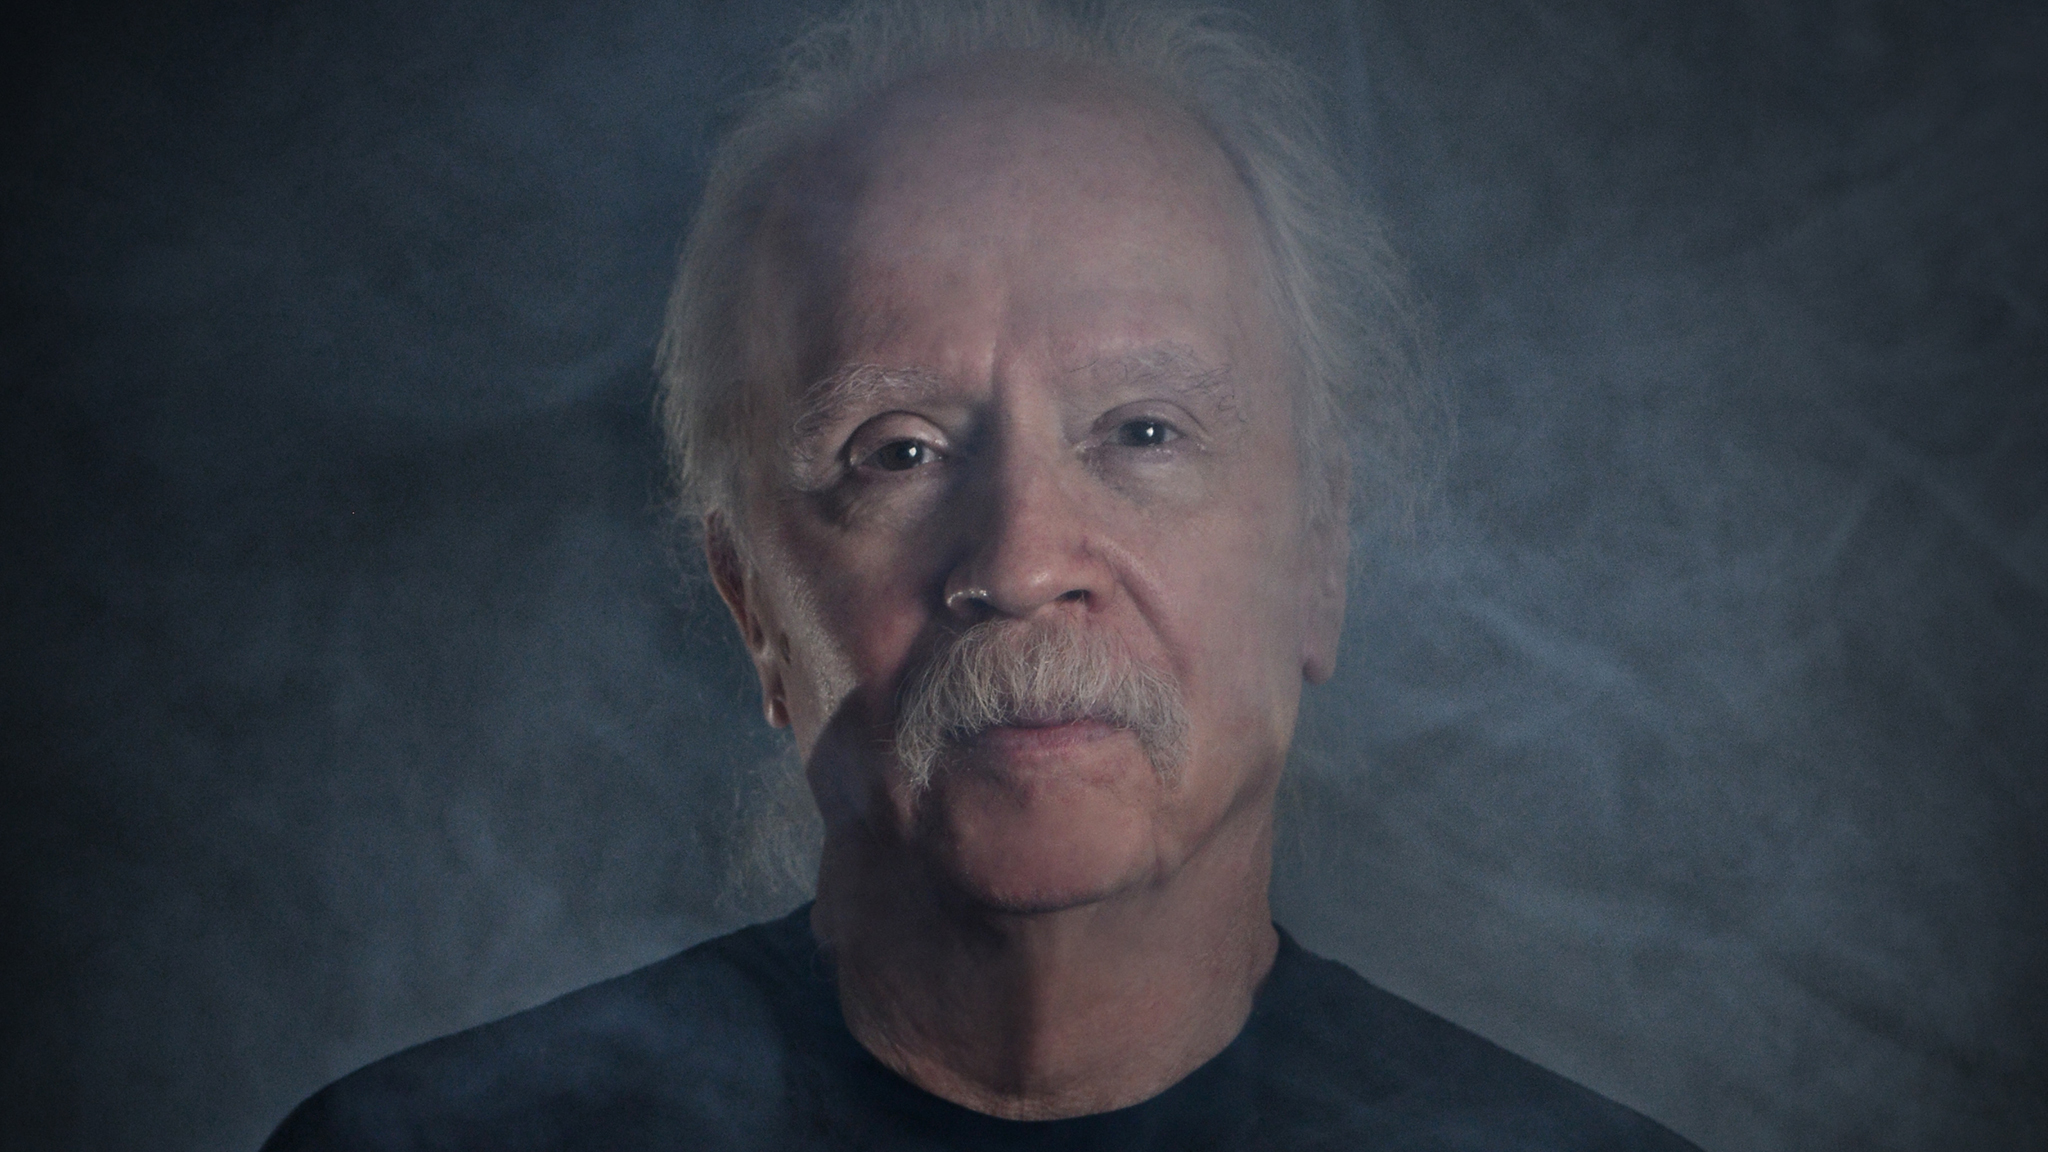 Director John Carpenter on composing his new album of original music